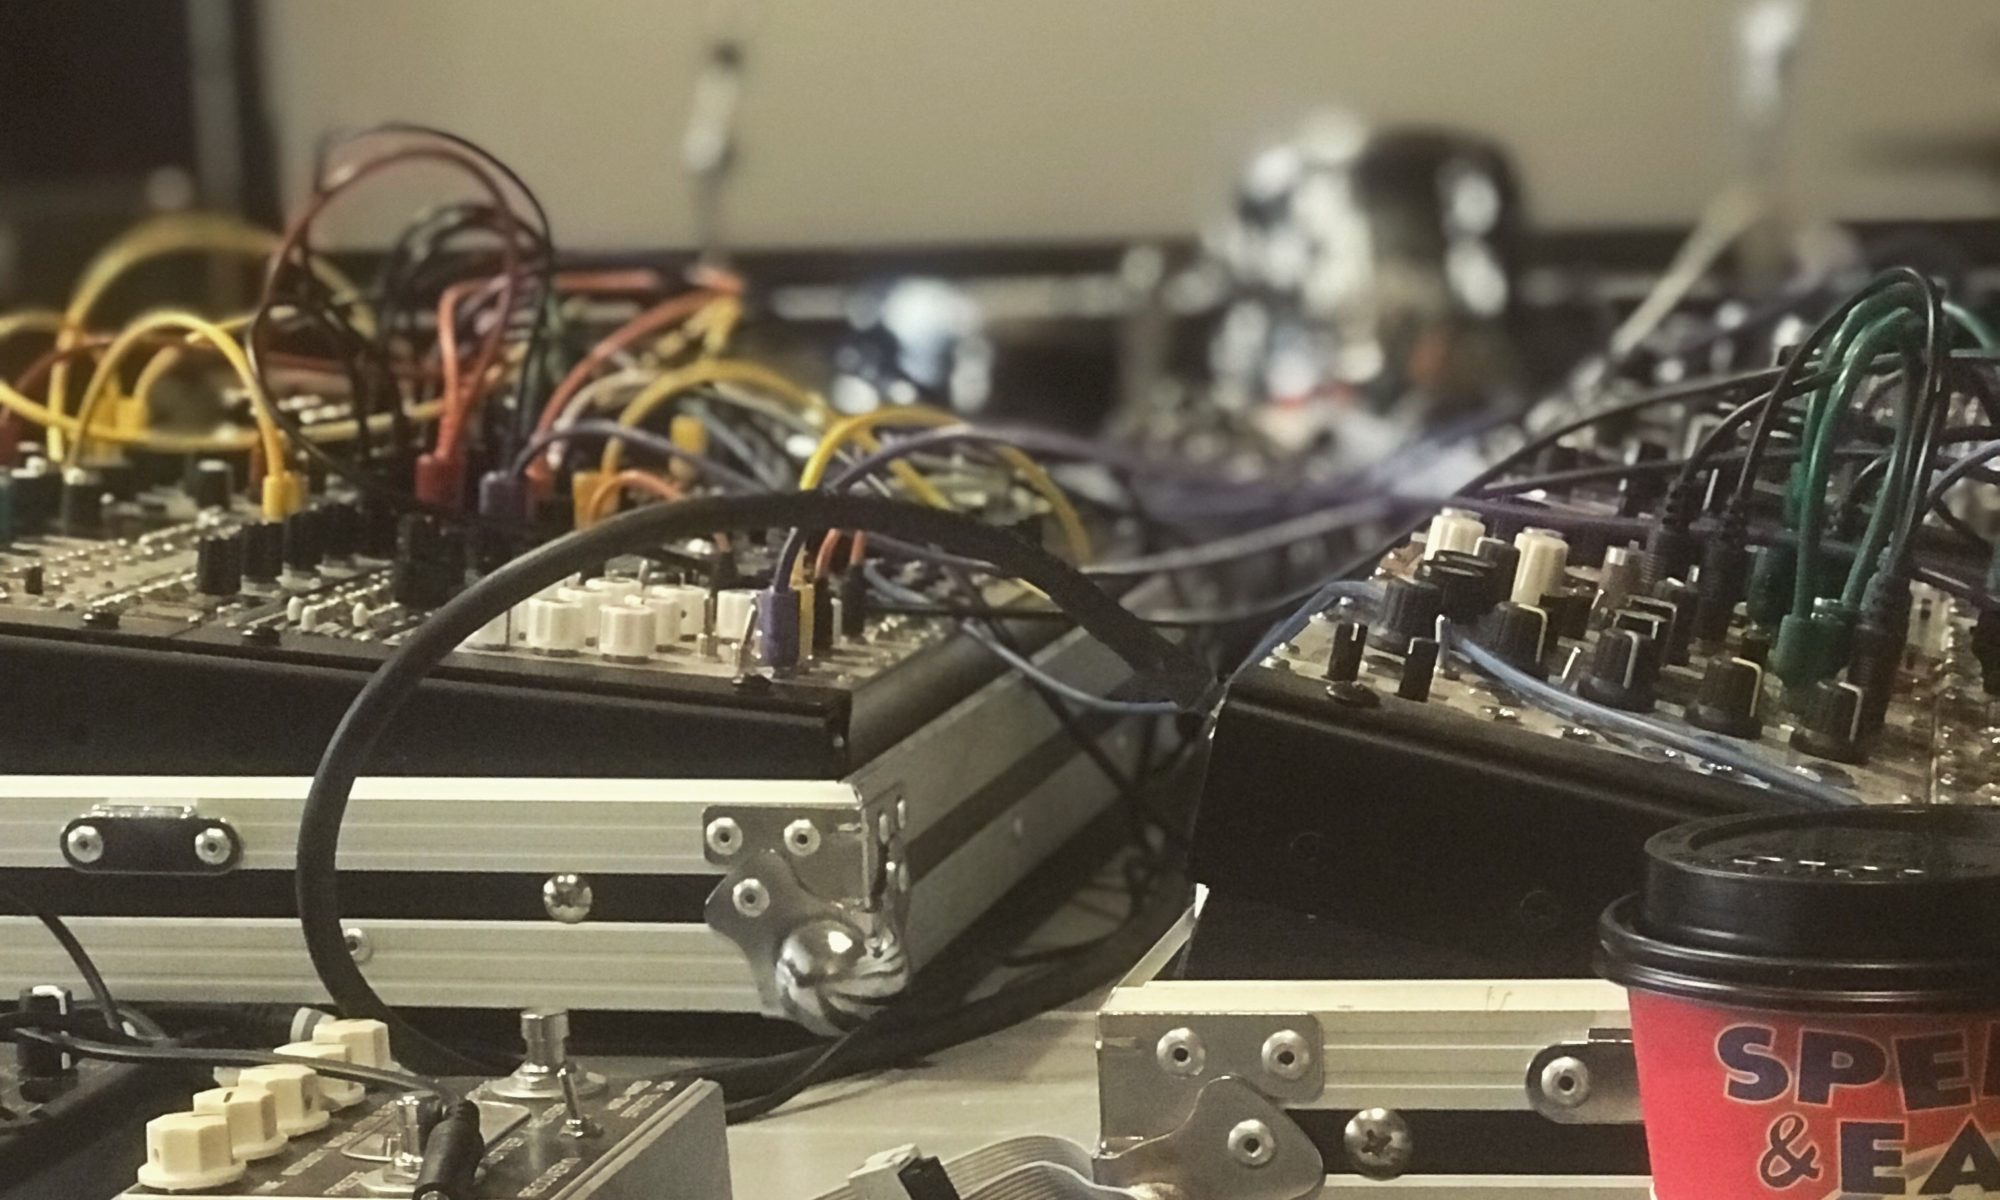 Classes Workshops Electrical Wiring Intro To Modular Synthesis